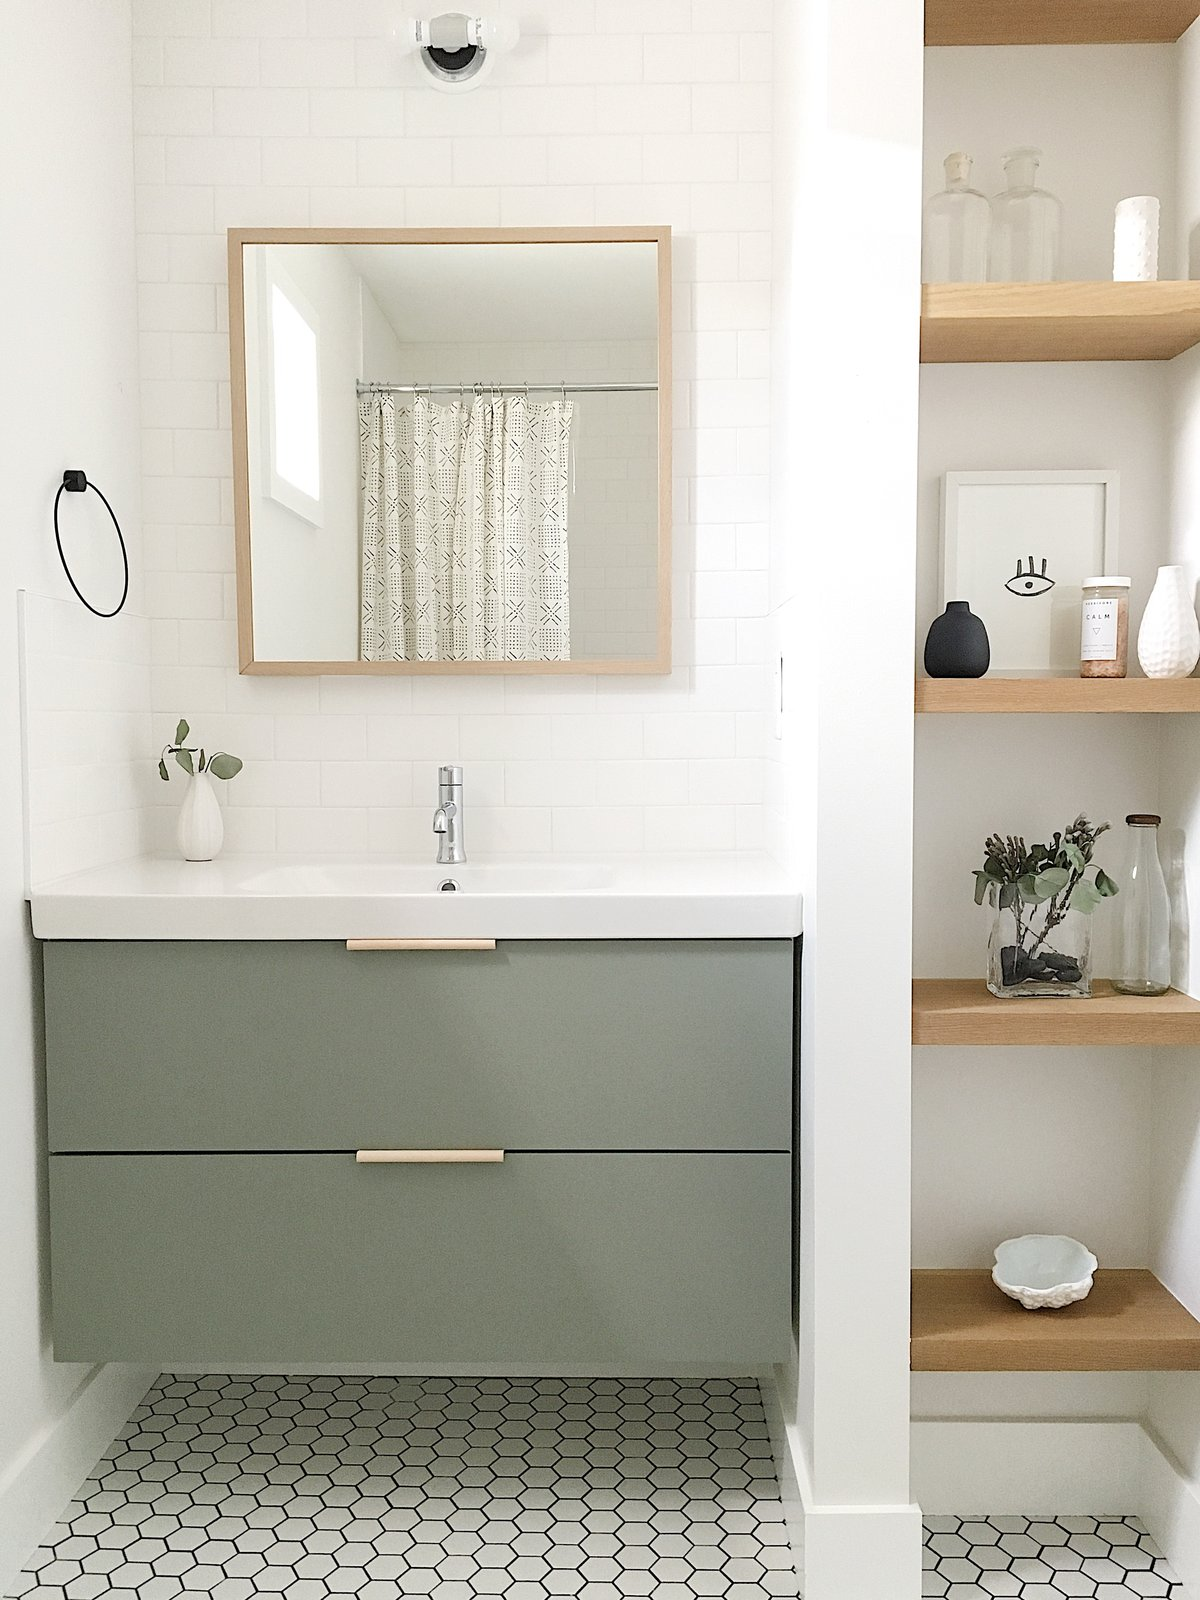 Bath Room, Wall Lighting, Porcelain Tile Floor, and Subway Tile Wall The guest bathroom utilizes a simple Ikea vanity custom painted to the perfect shade of green and features leather hardware from the Australian company Made Measure.  Best Photos from The Simply Simple Home